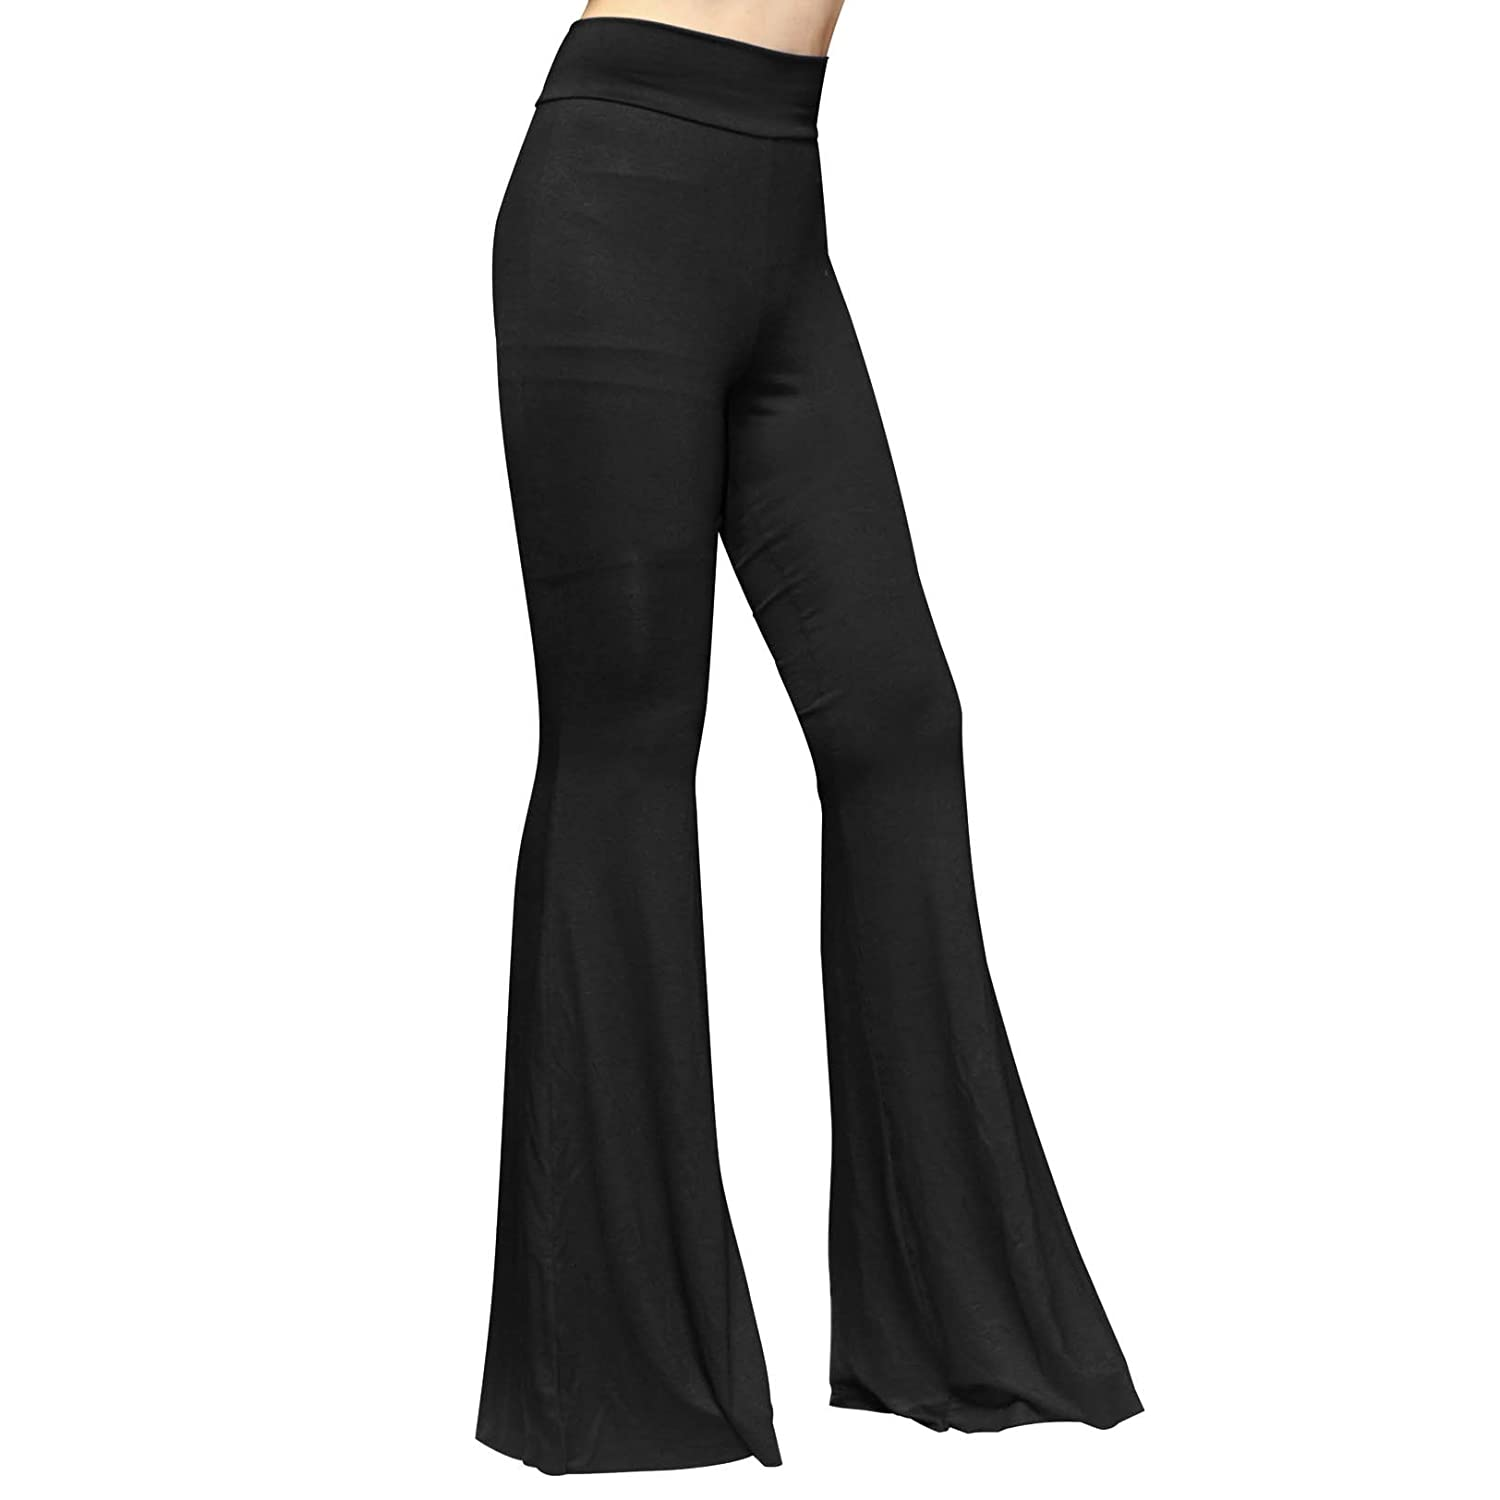 SMT Women's High Waist Wide Leg Long Palazzo Bell Bottom Yoga ...